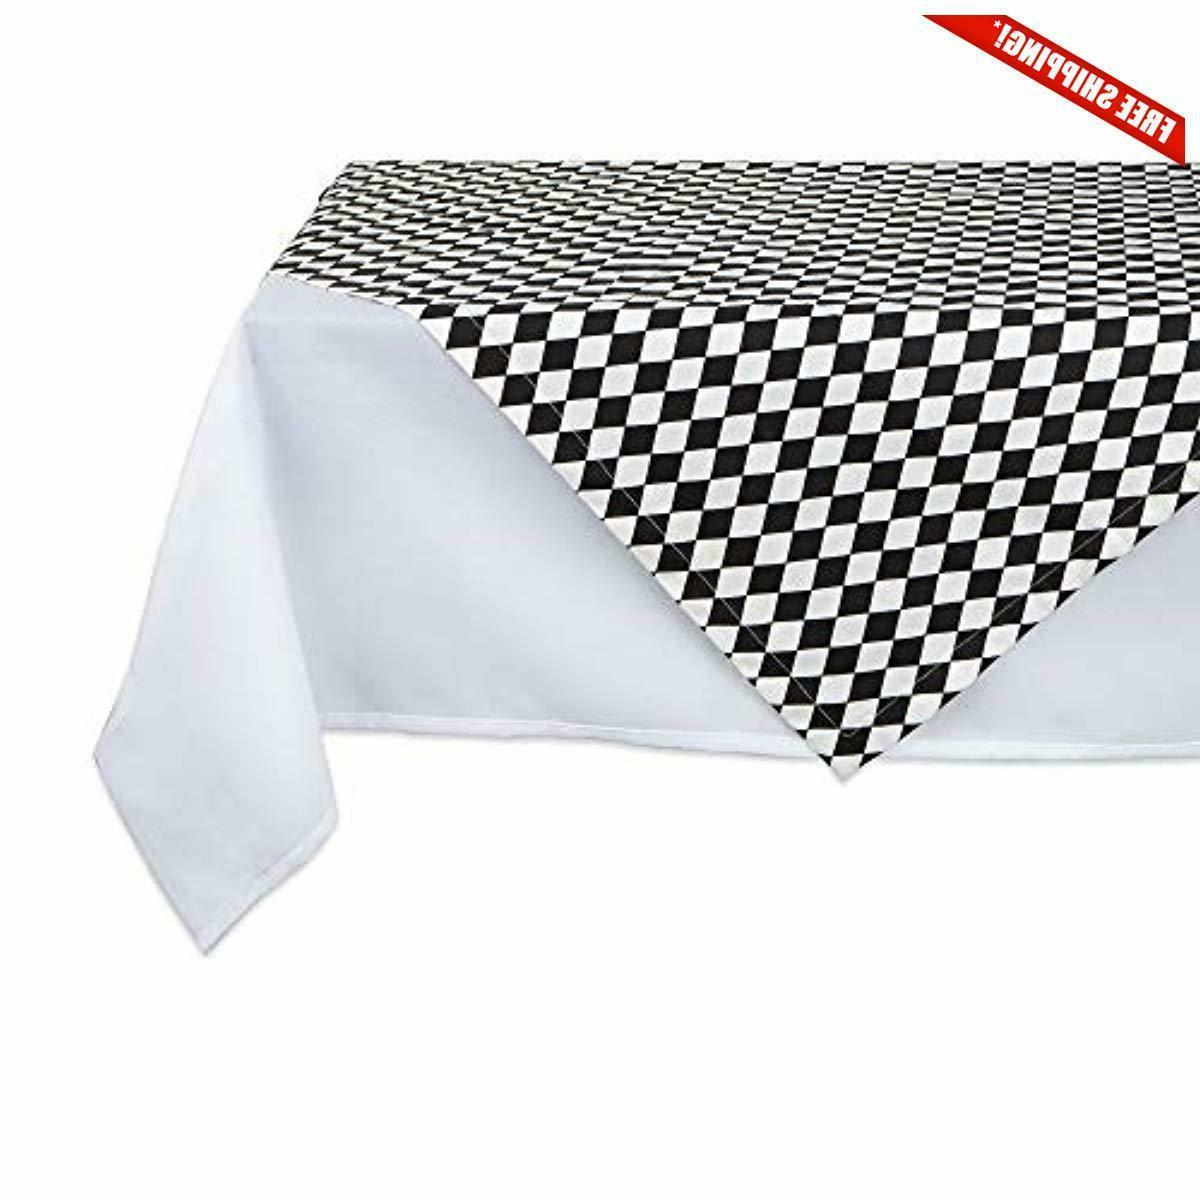 100 percent cotton harlequin printed table topper